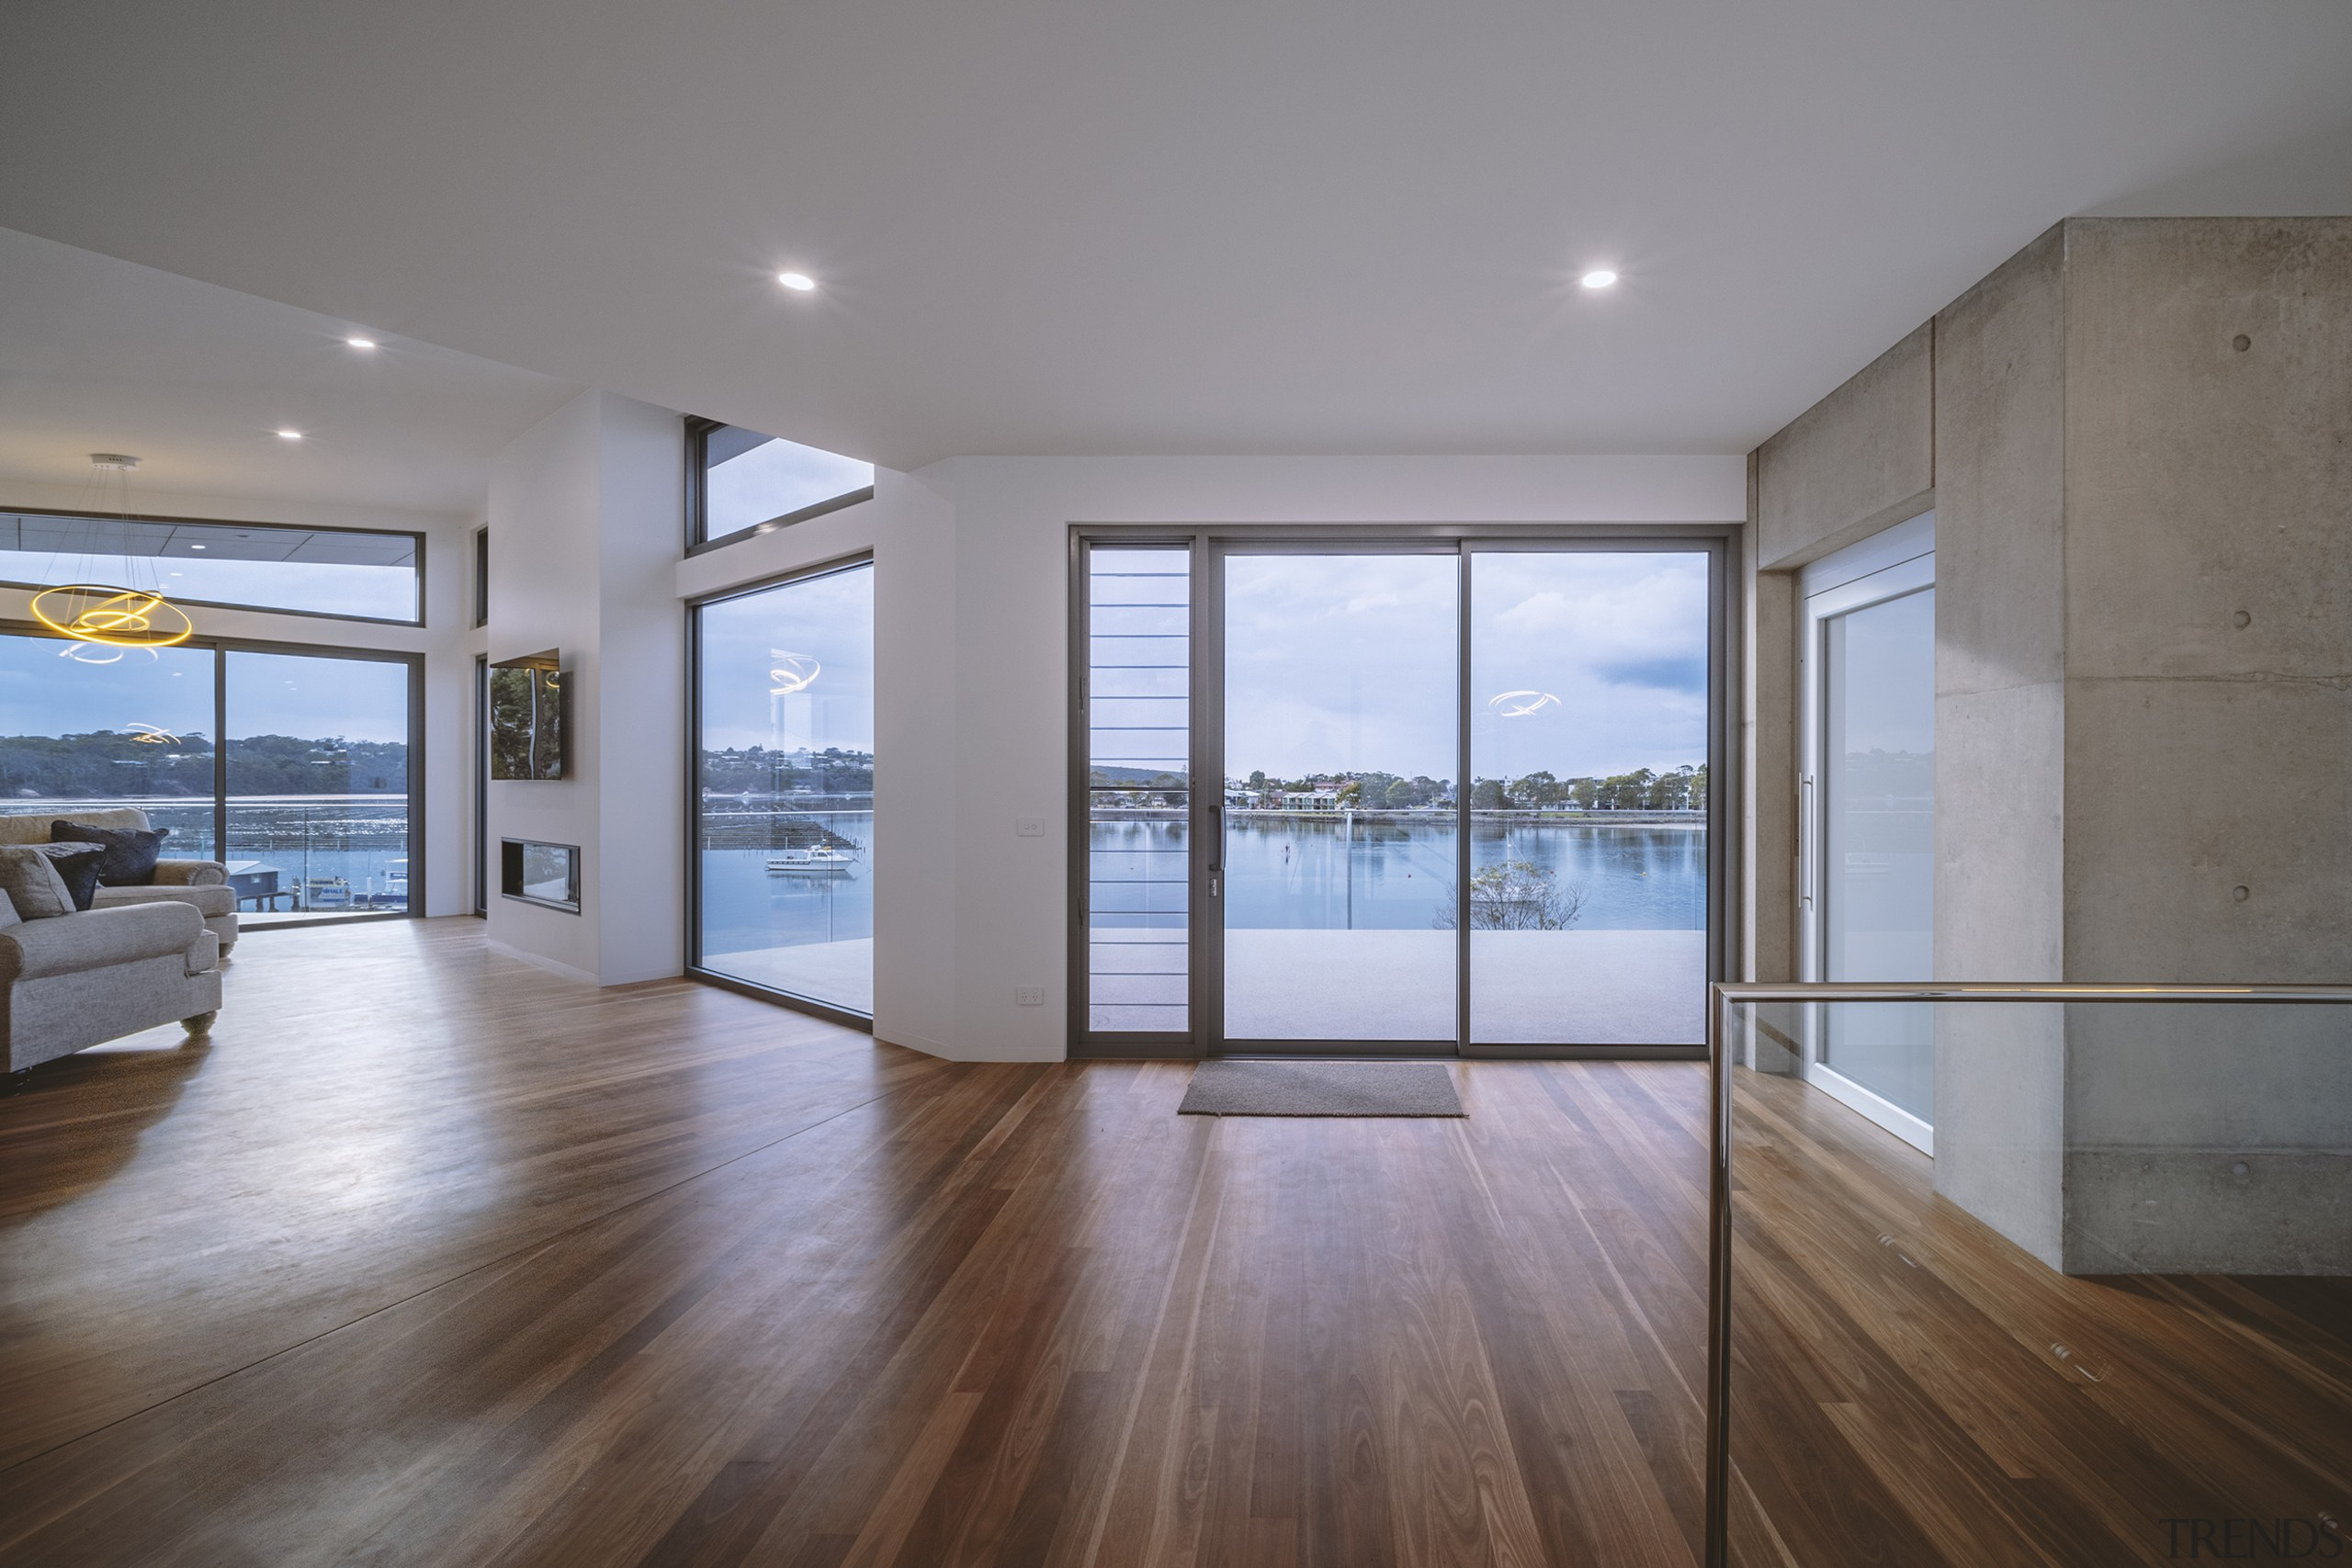 The exposed raw concrete and timber flooring make